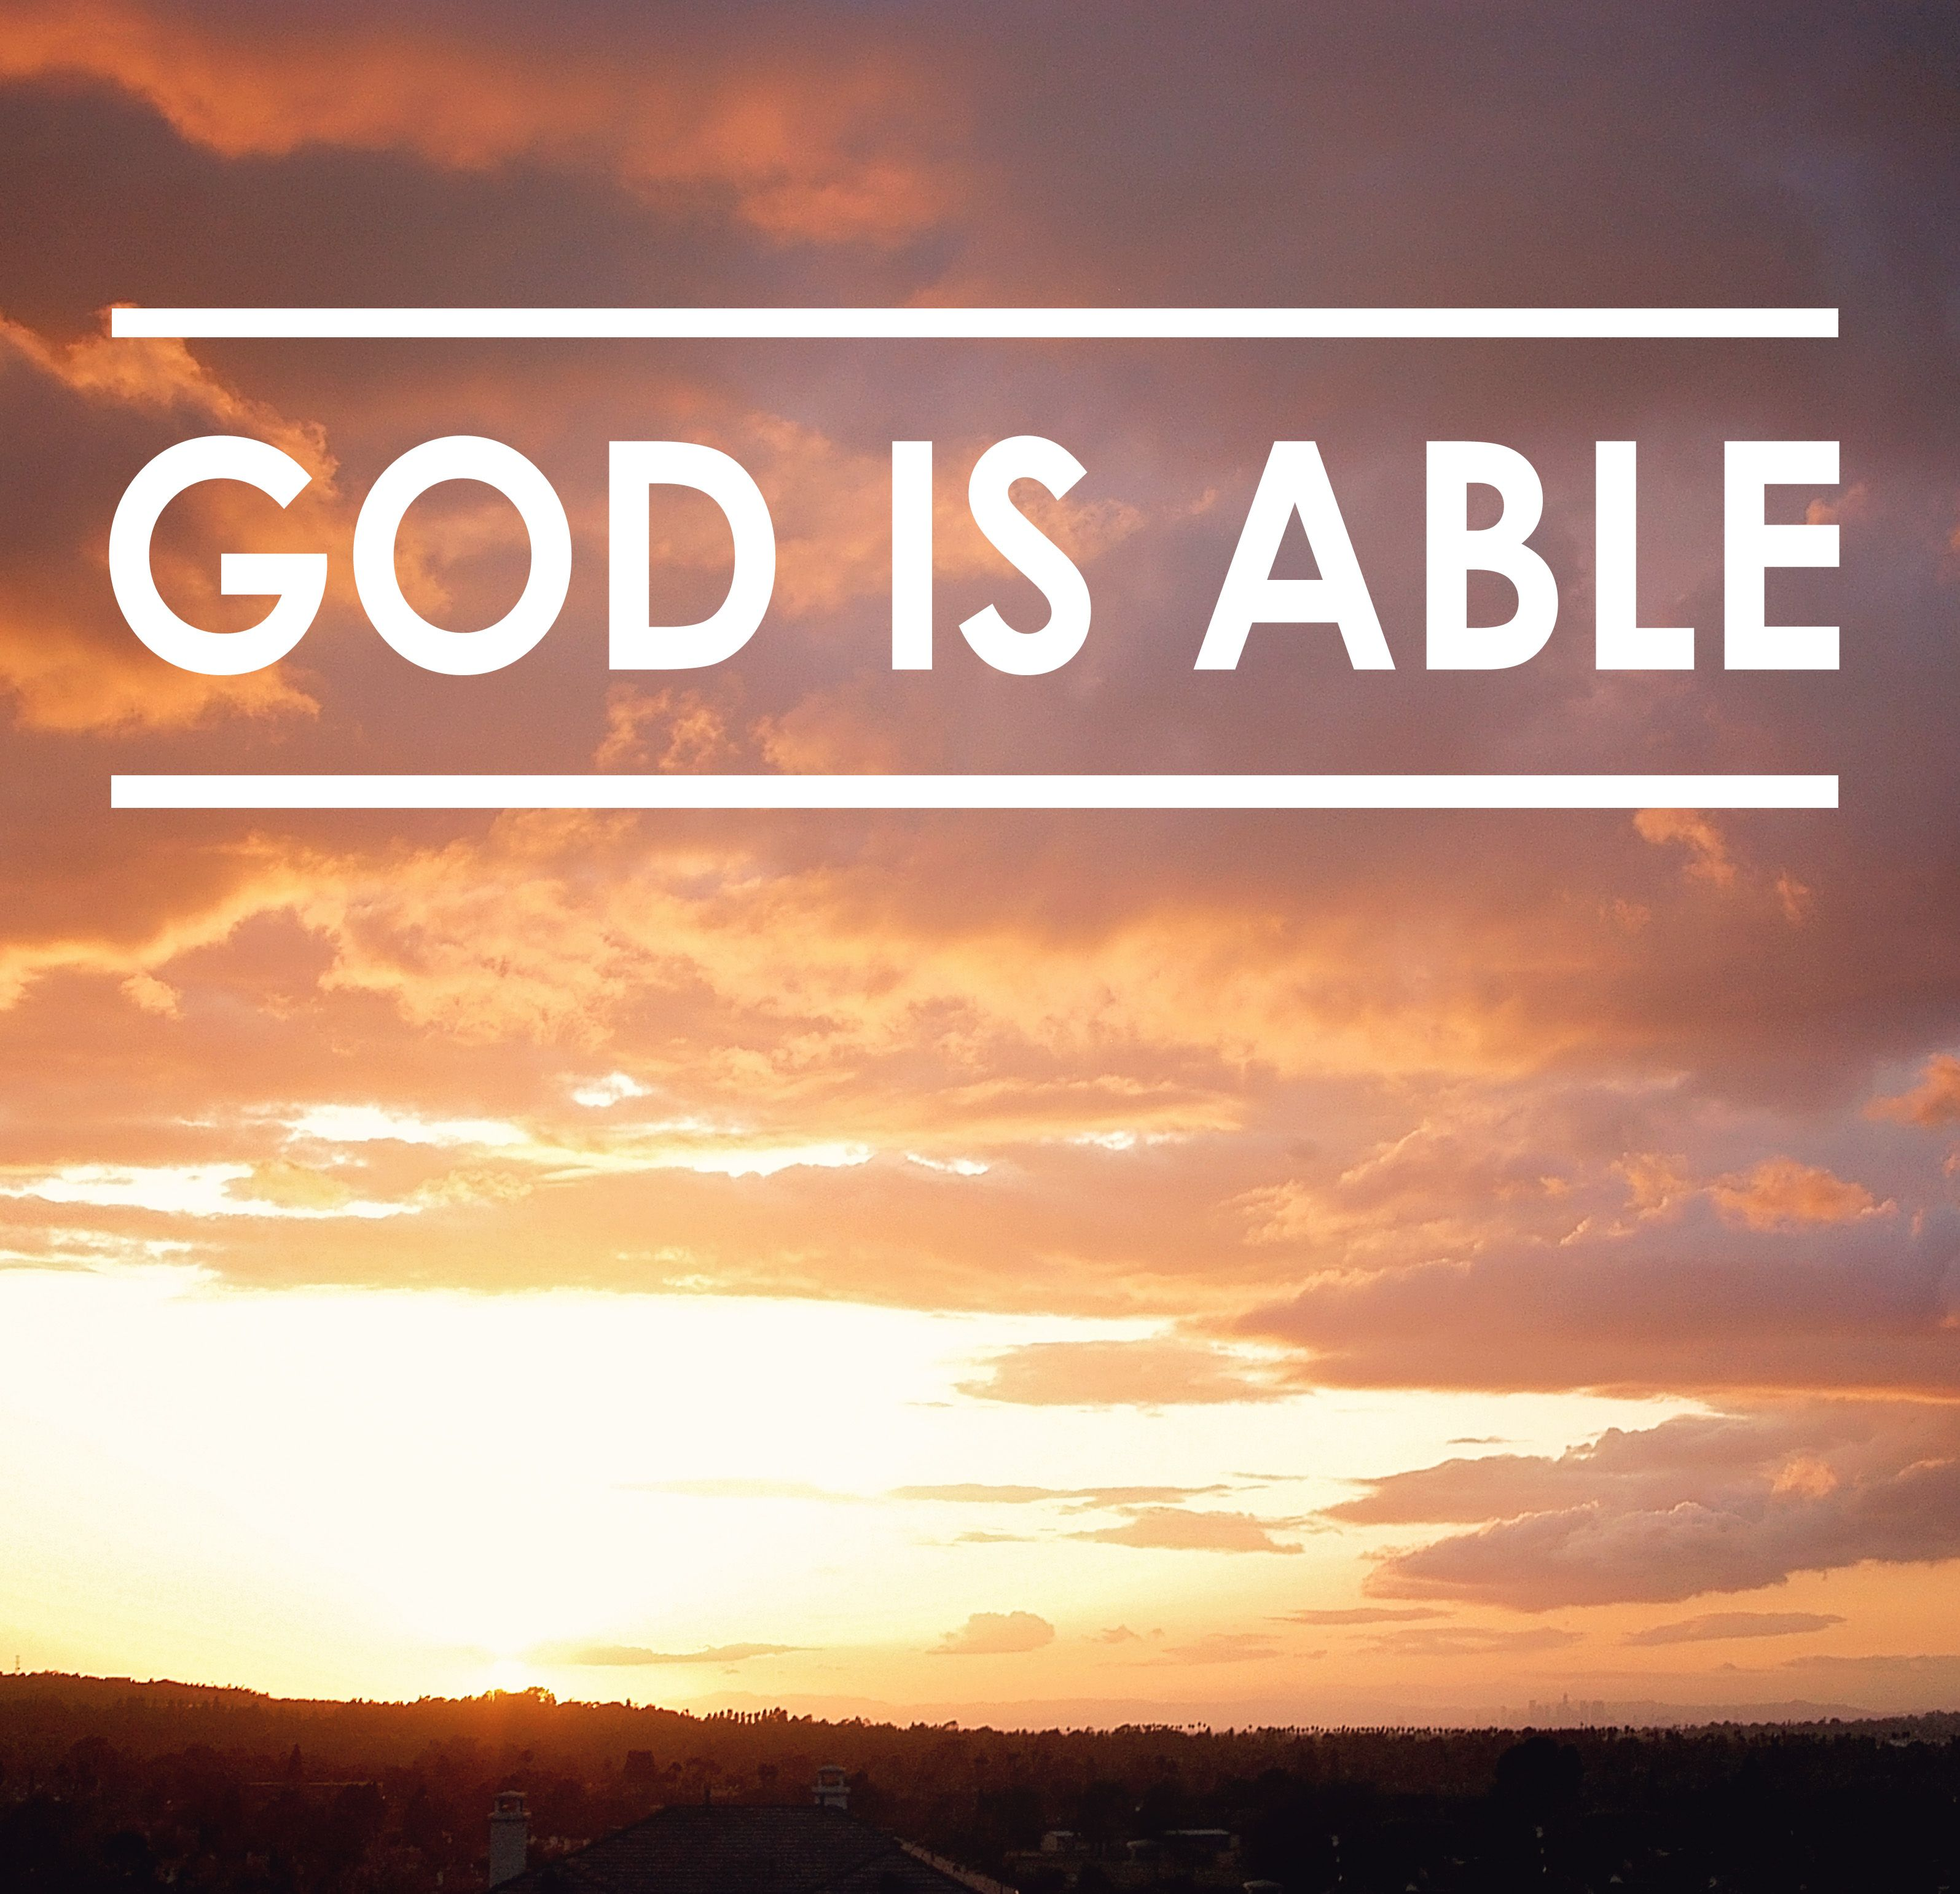 Superb God Is ABLE!